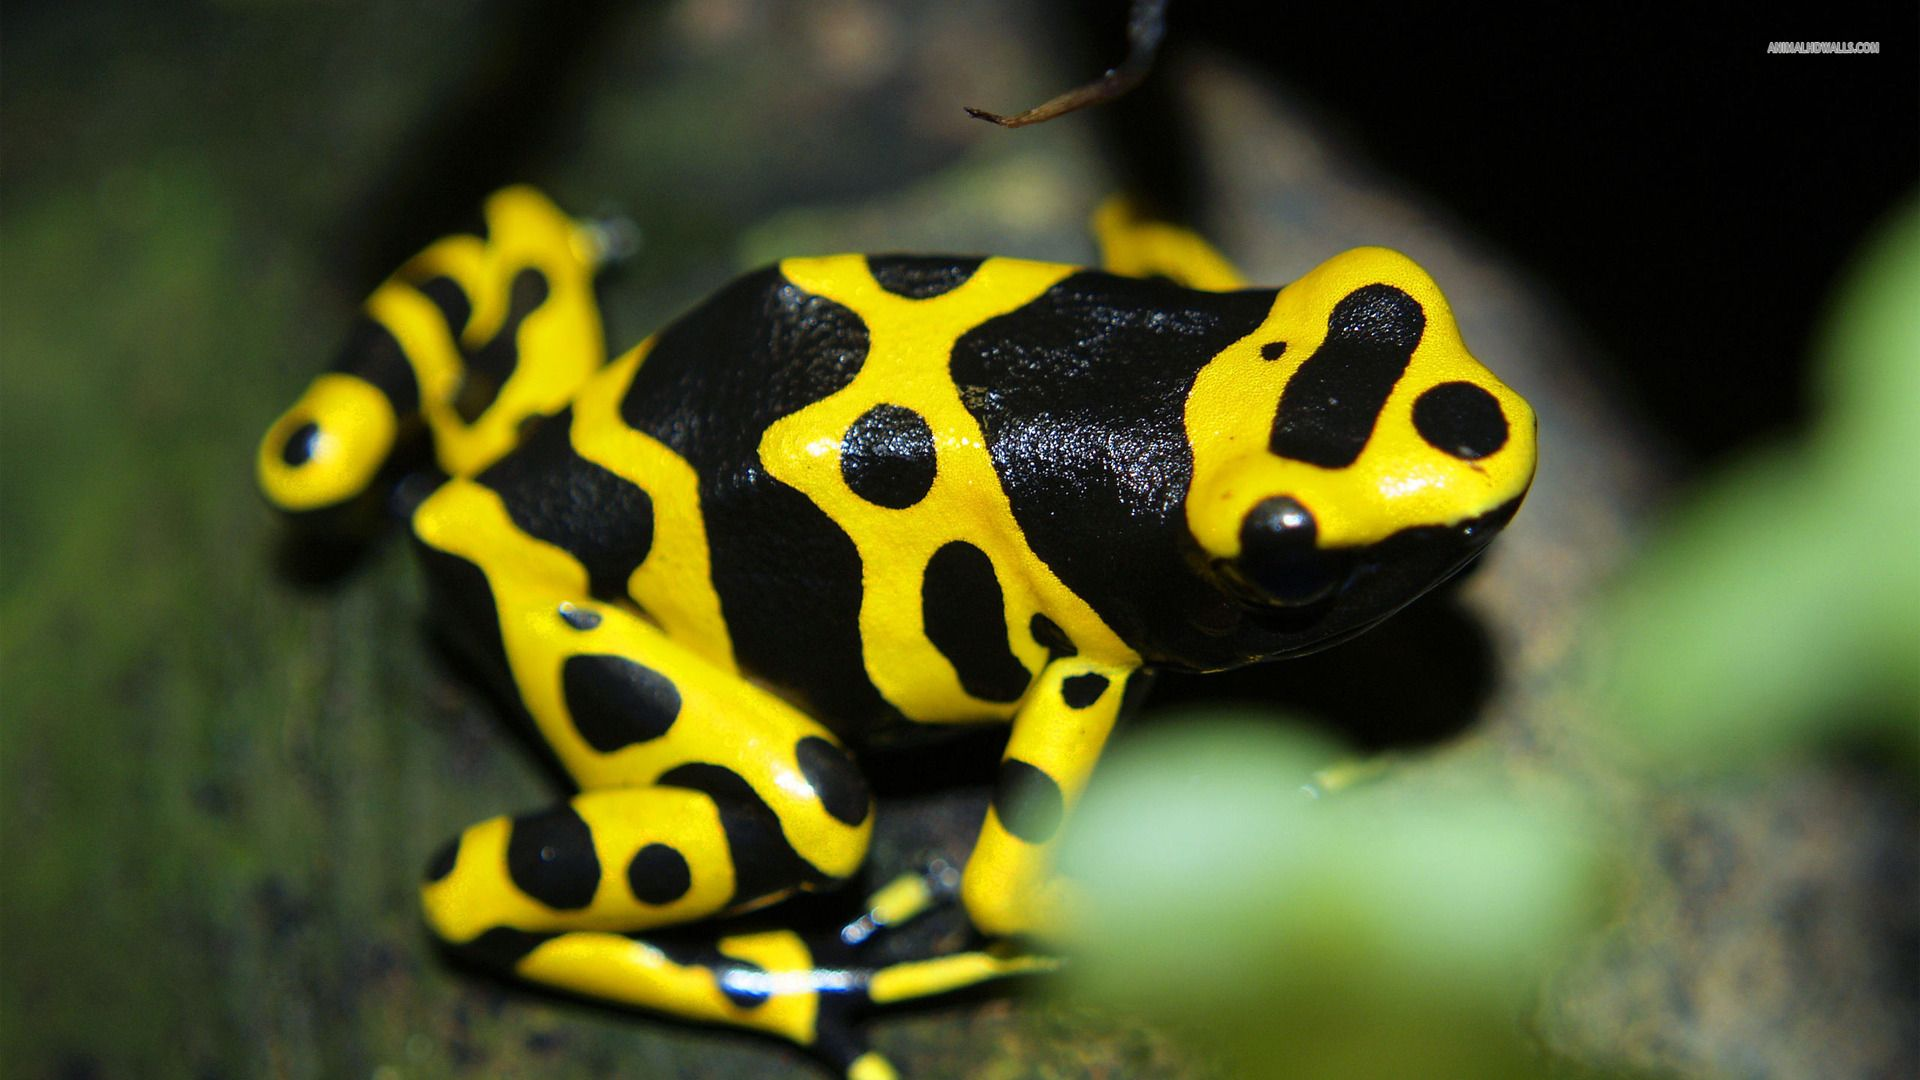 Poison Dart Frog Hd Wallpaper Poison Dart Frogs Frog Poisonous